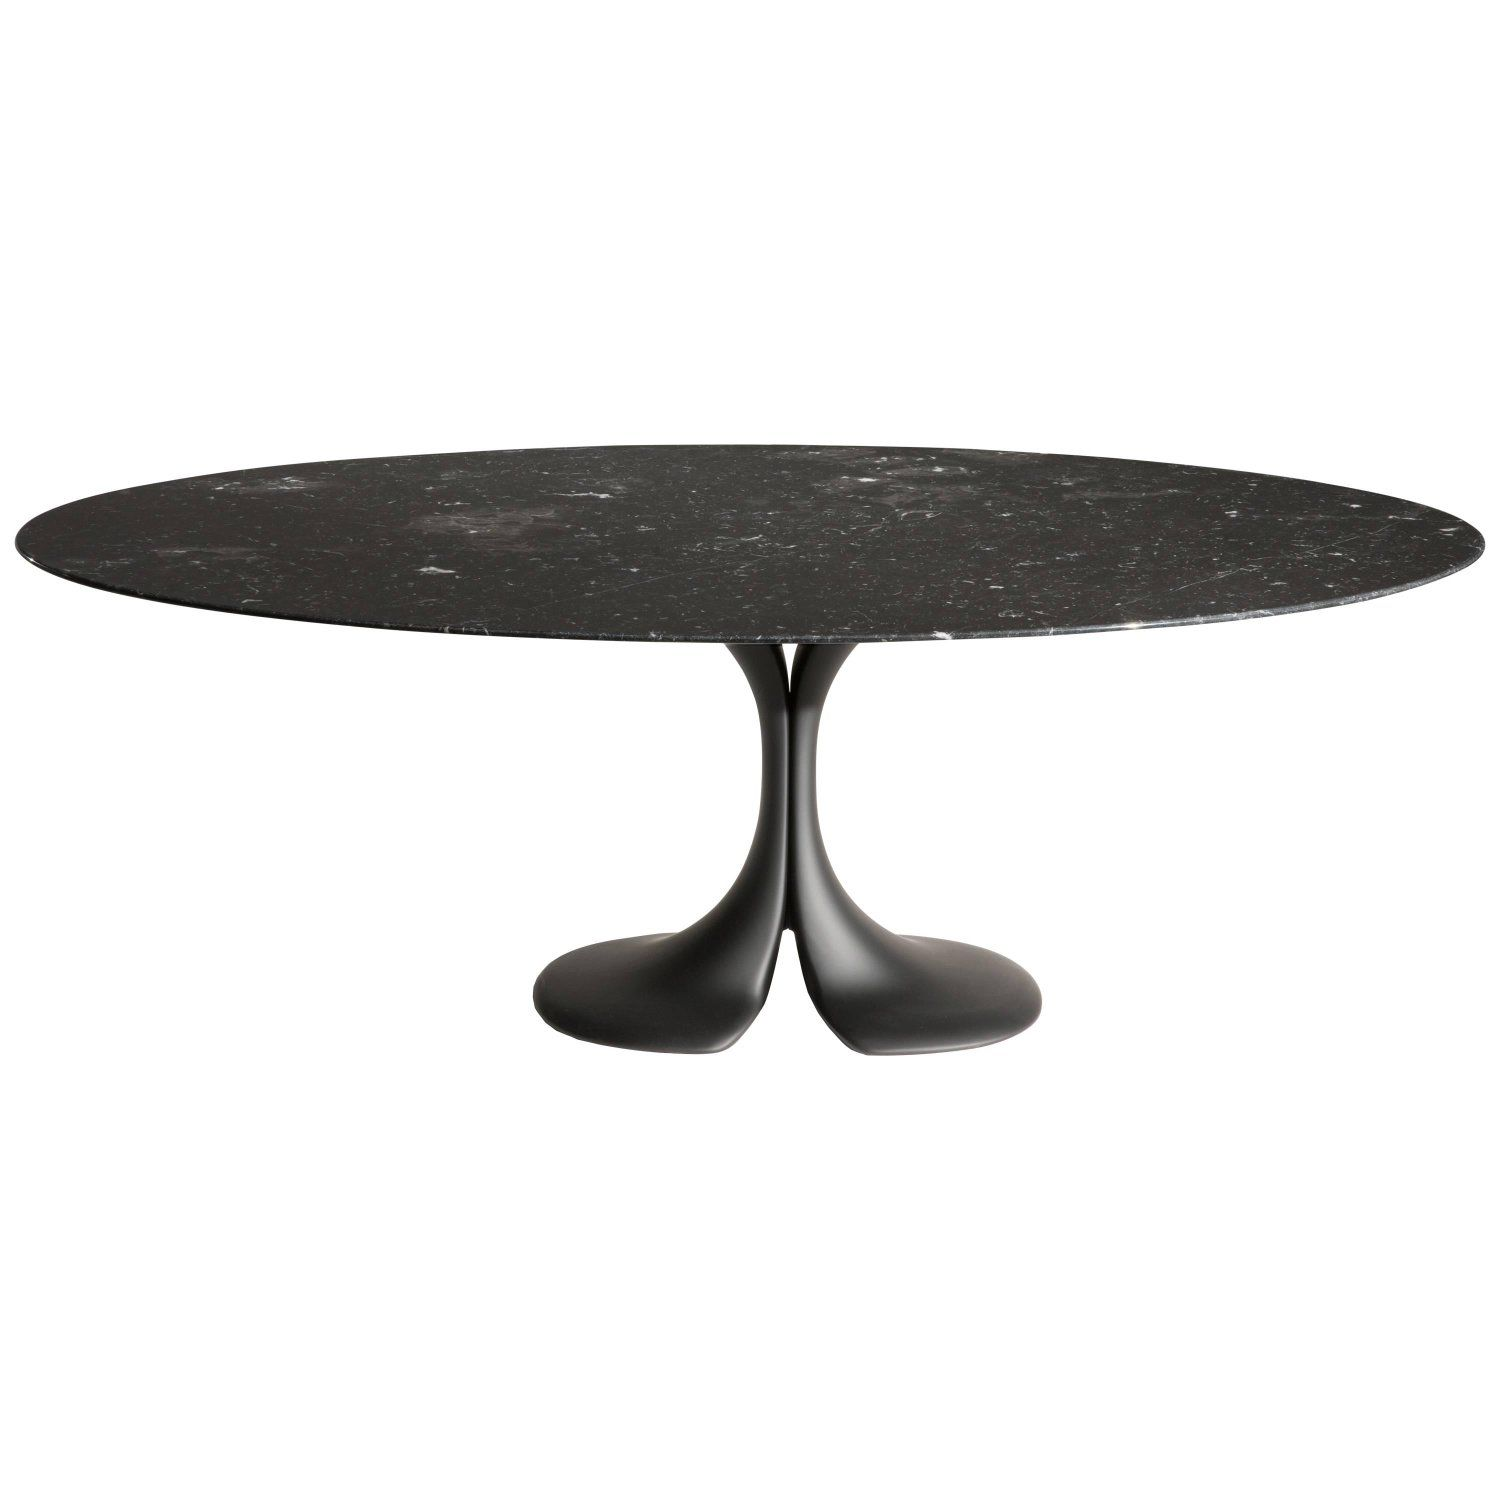 Driade Didymos Glossy Black Marquina Marble Oval Table